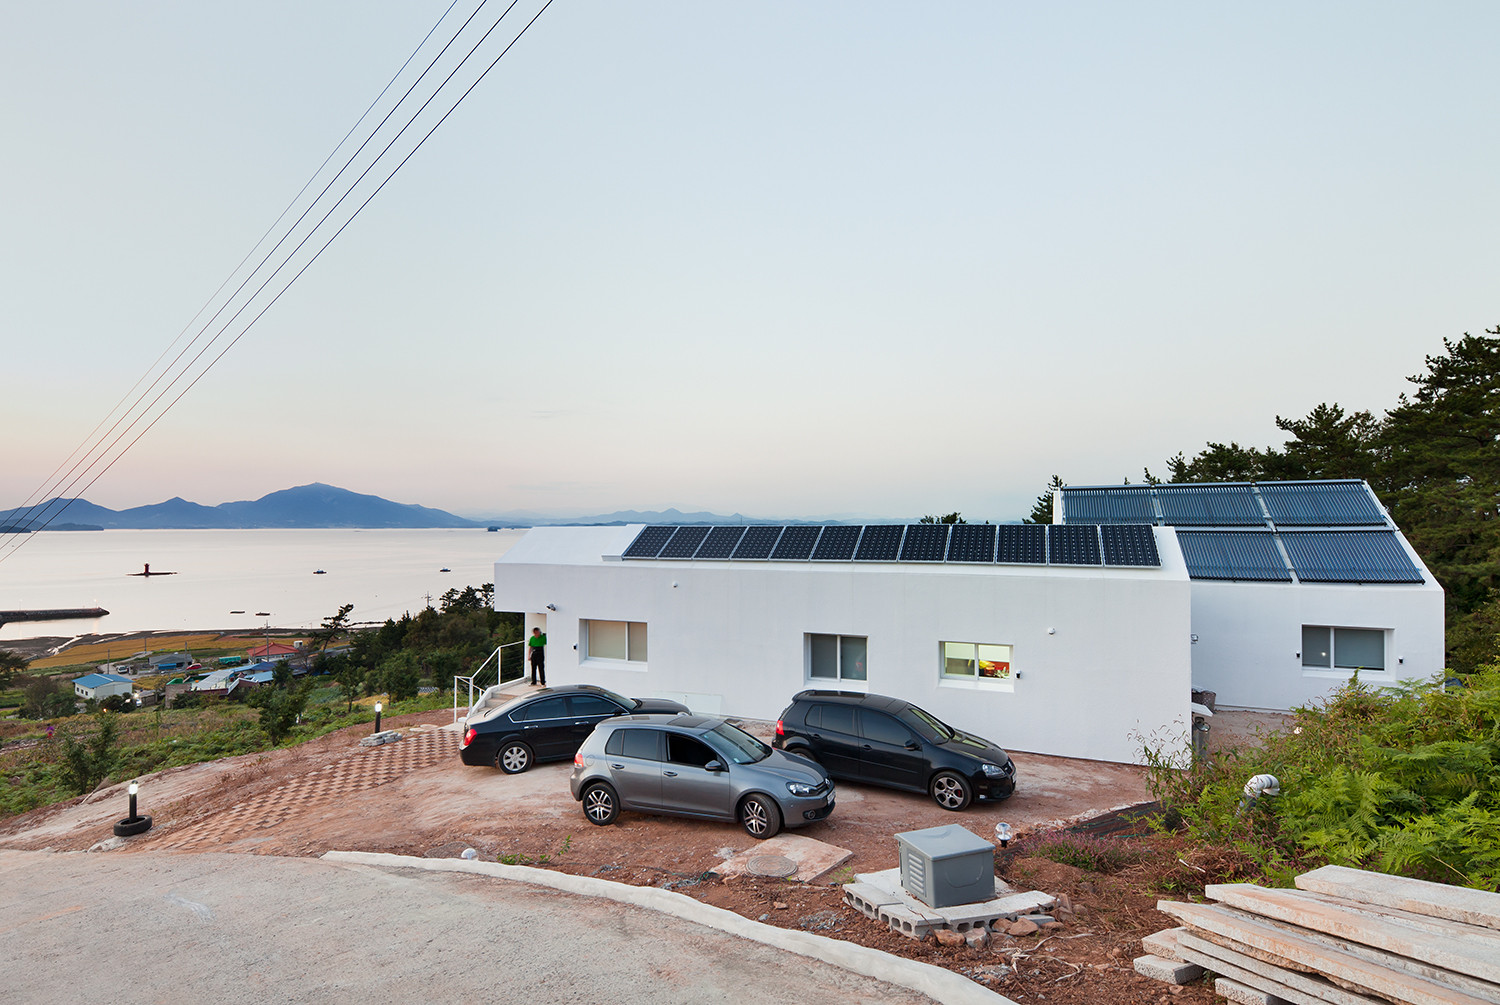 Net Zero Energy House / Lifethings